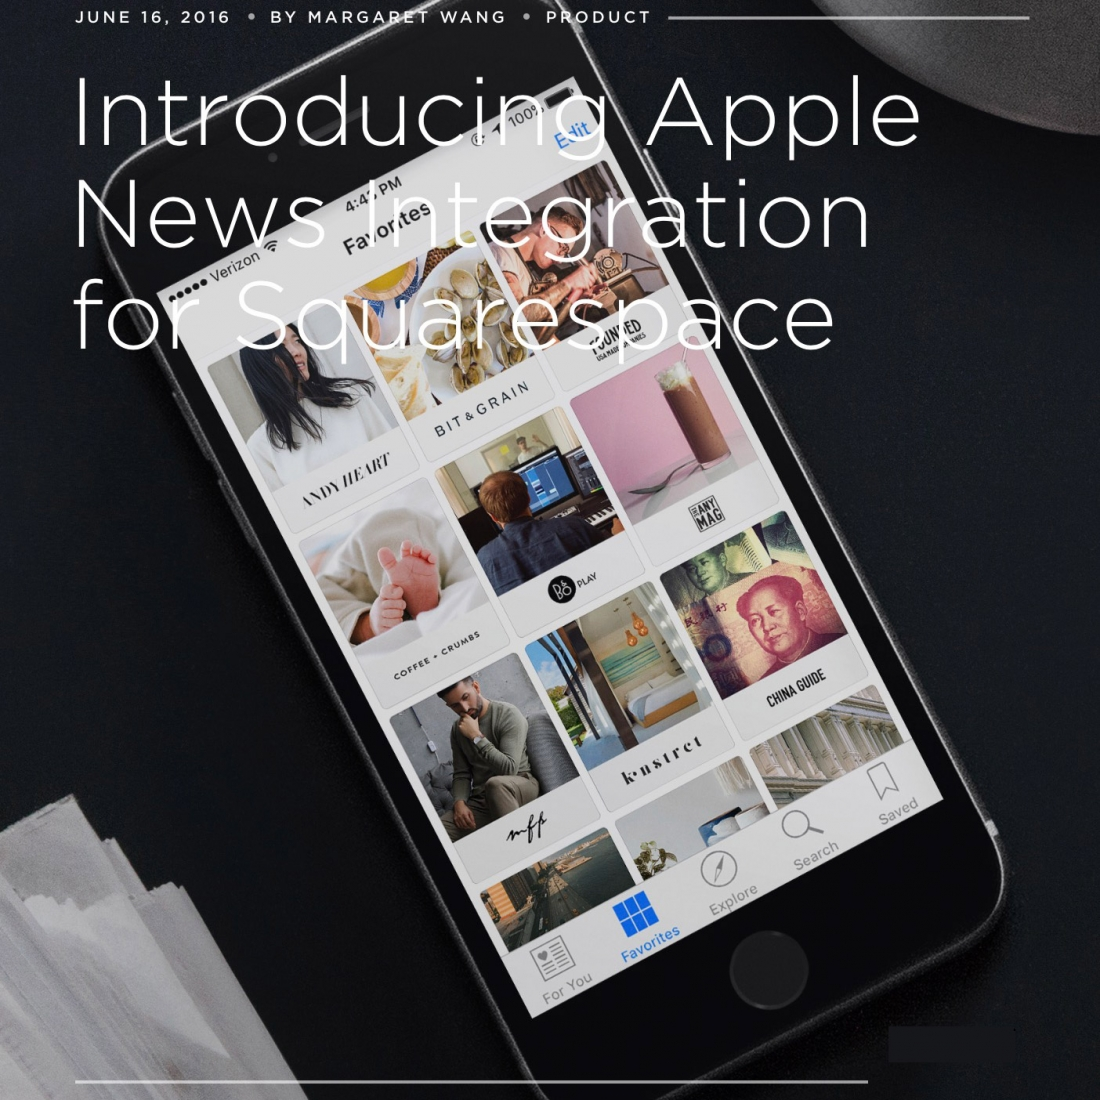 /tmo/cool_stuff_found/post/squarespace-supports-apple-news-format-for-customers